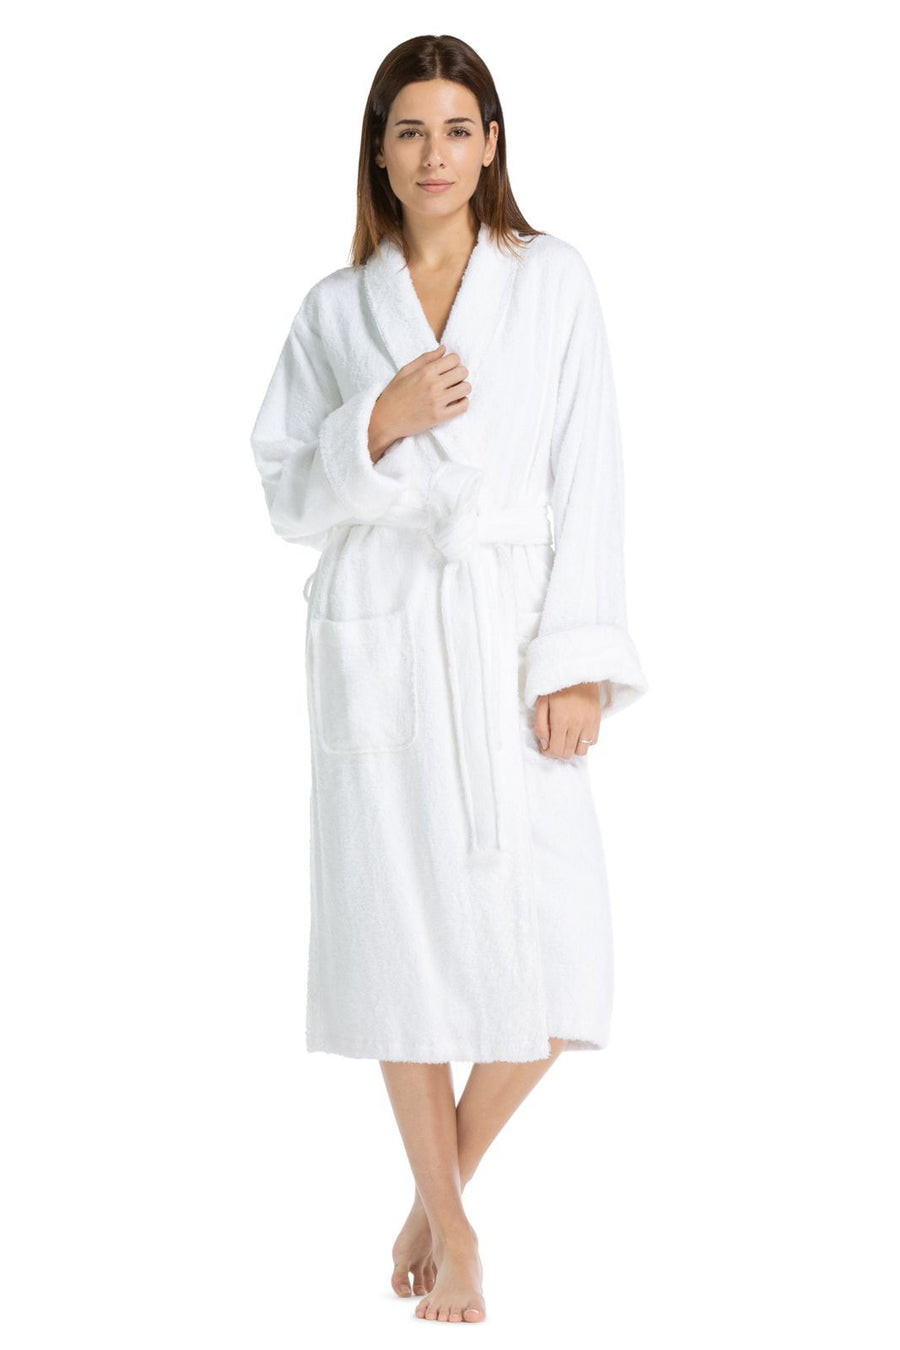 Fishers Finery Women s Full Length Resort Terry Cloth Robe 2a8df7fe0